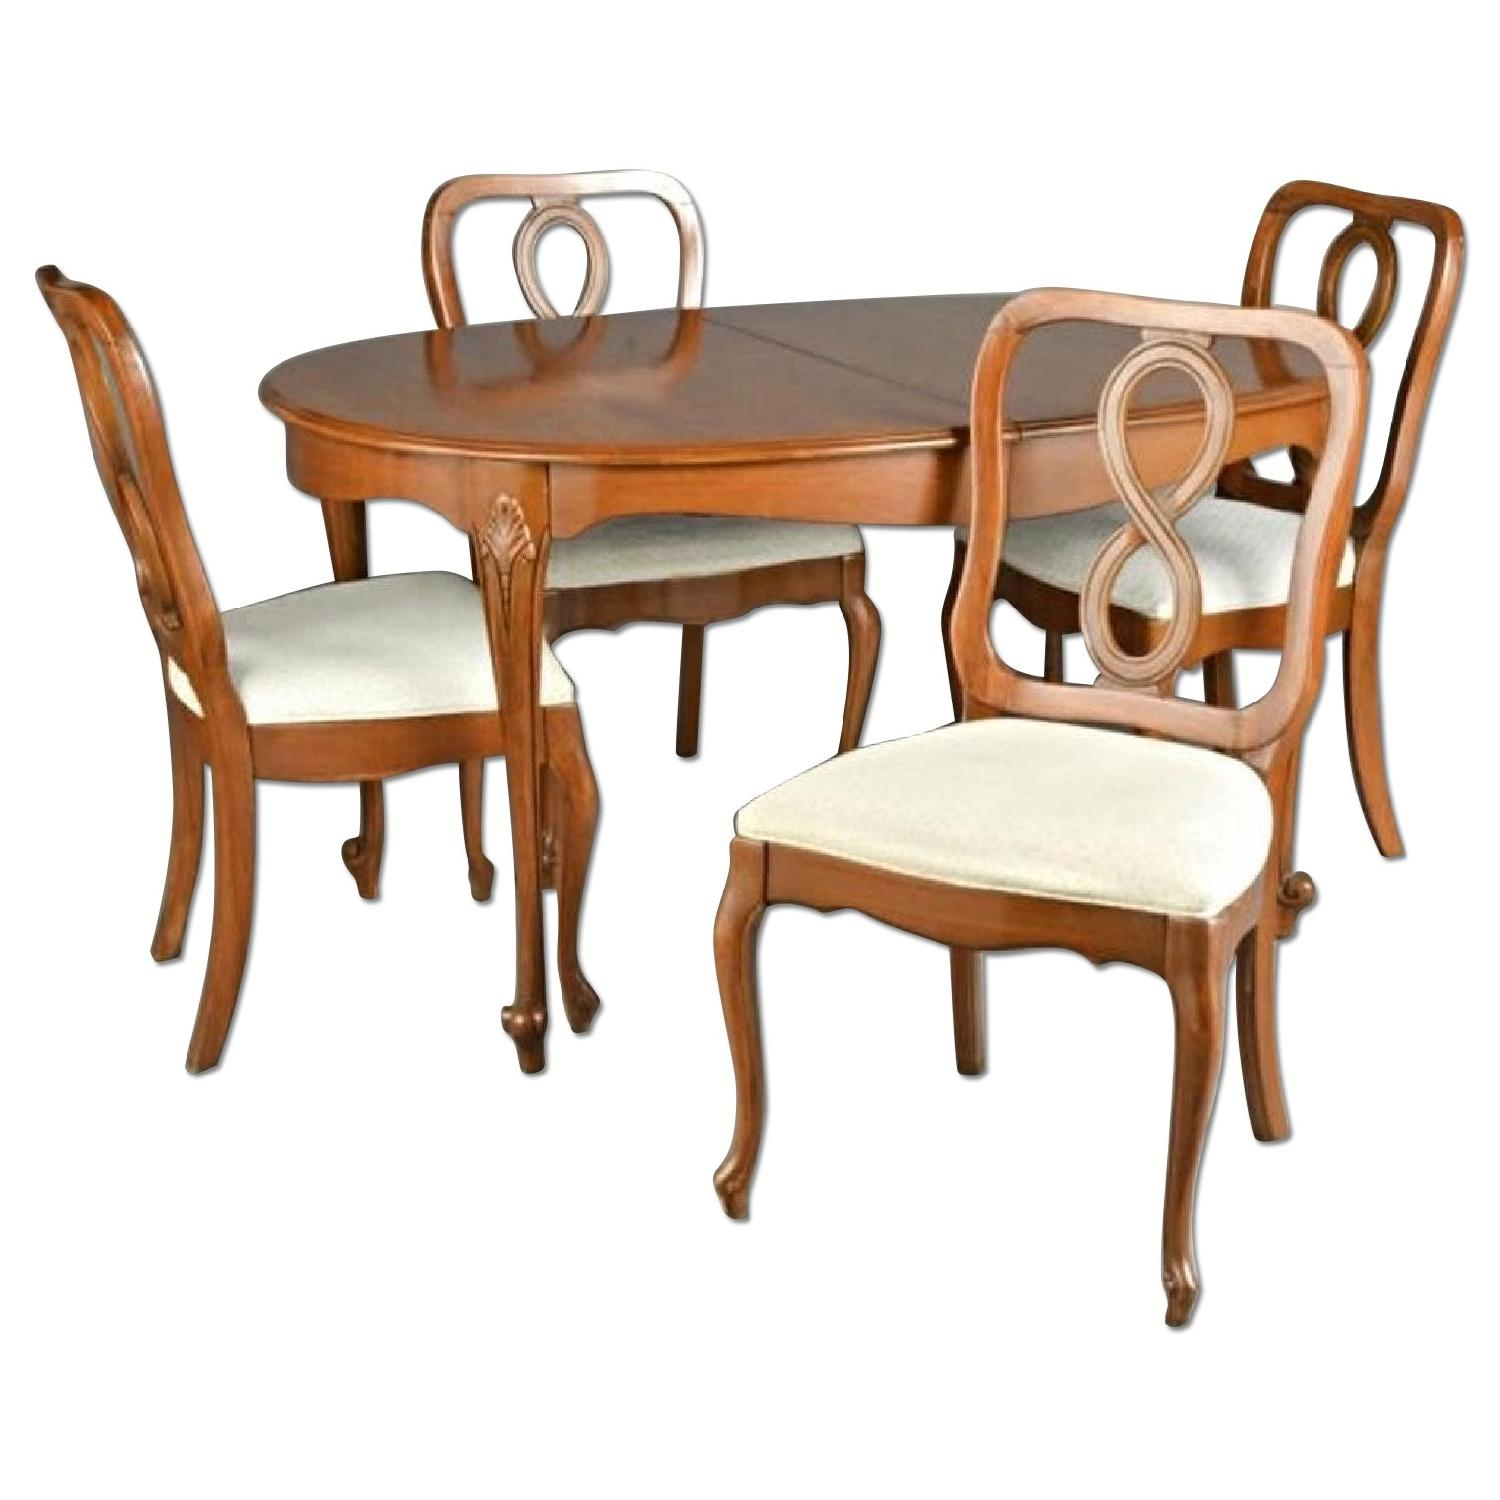 Queen Anne Fruitwood Carved Dining Table w/ 4 Chairs